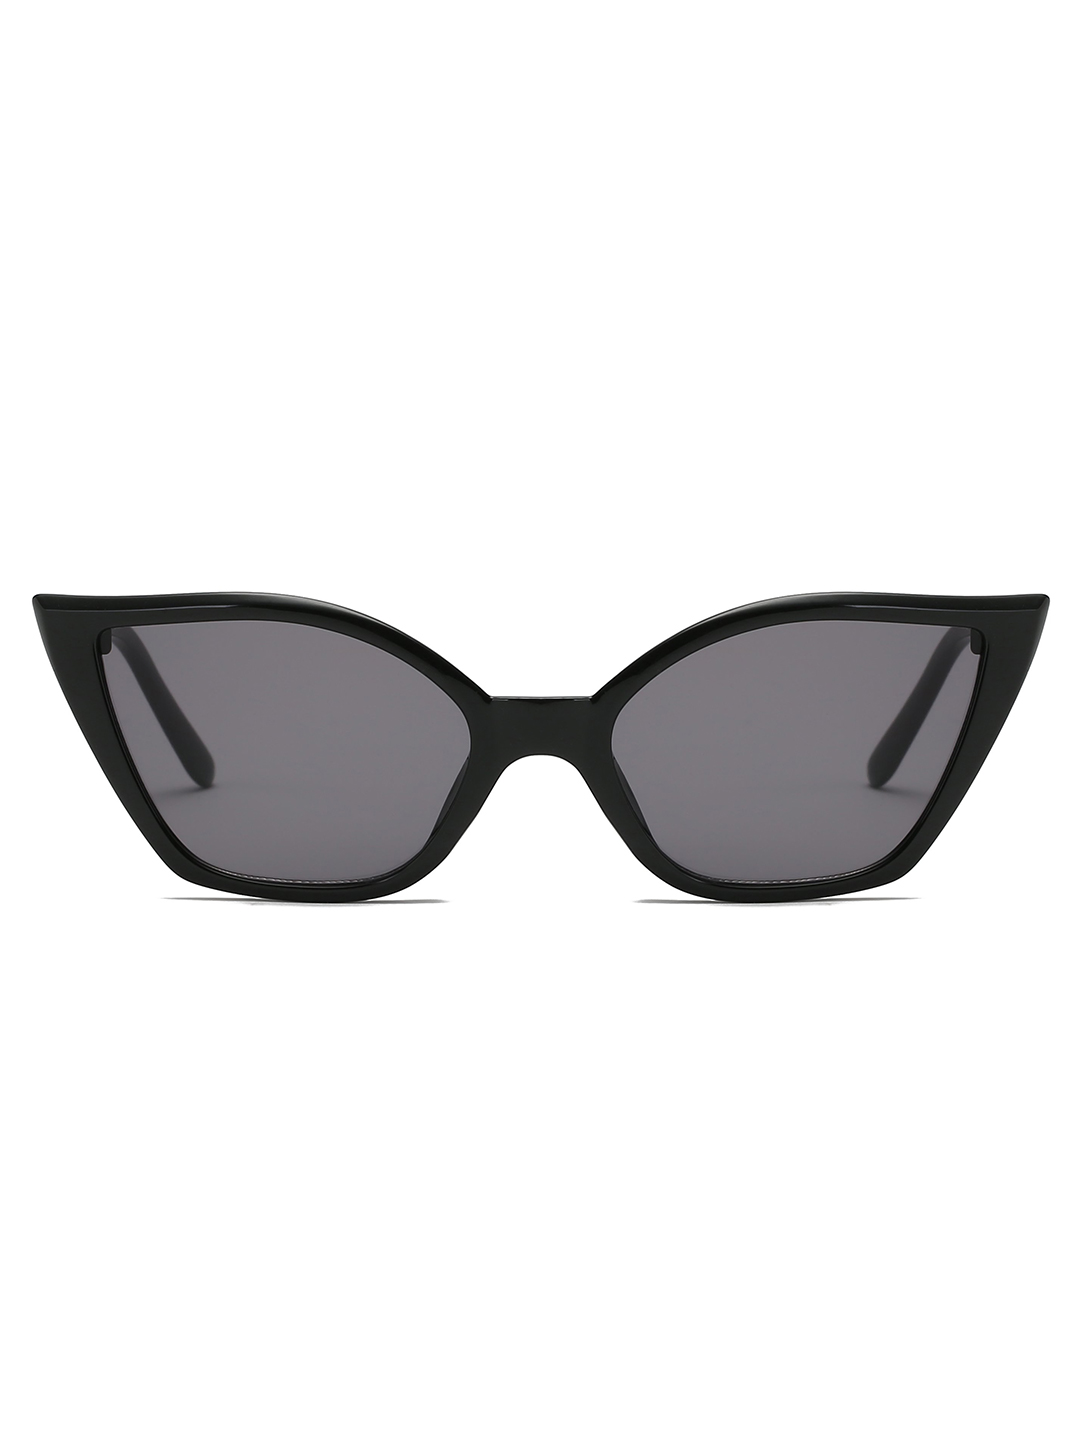 Retro Vintage Cat-eye sunglasses - Black - Front